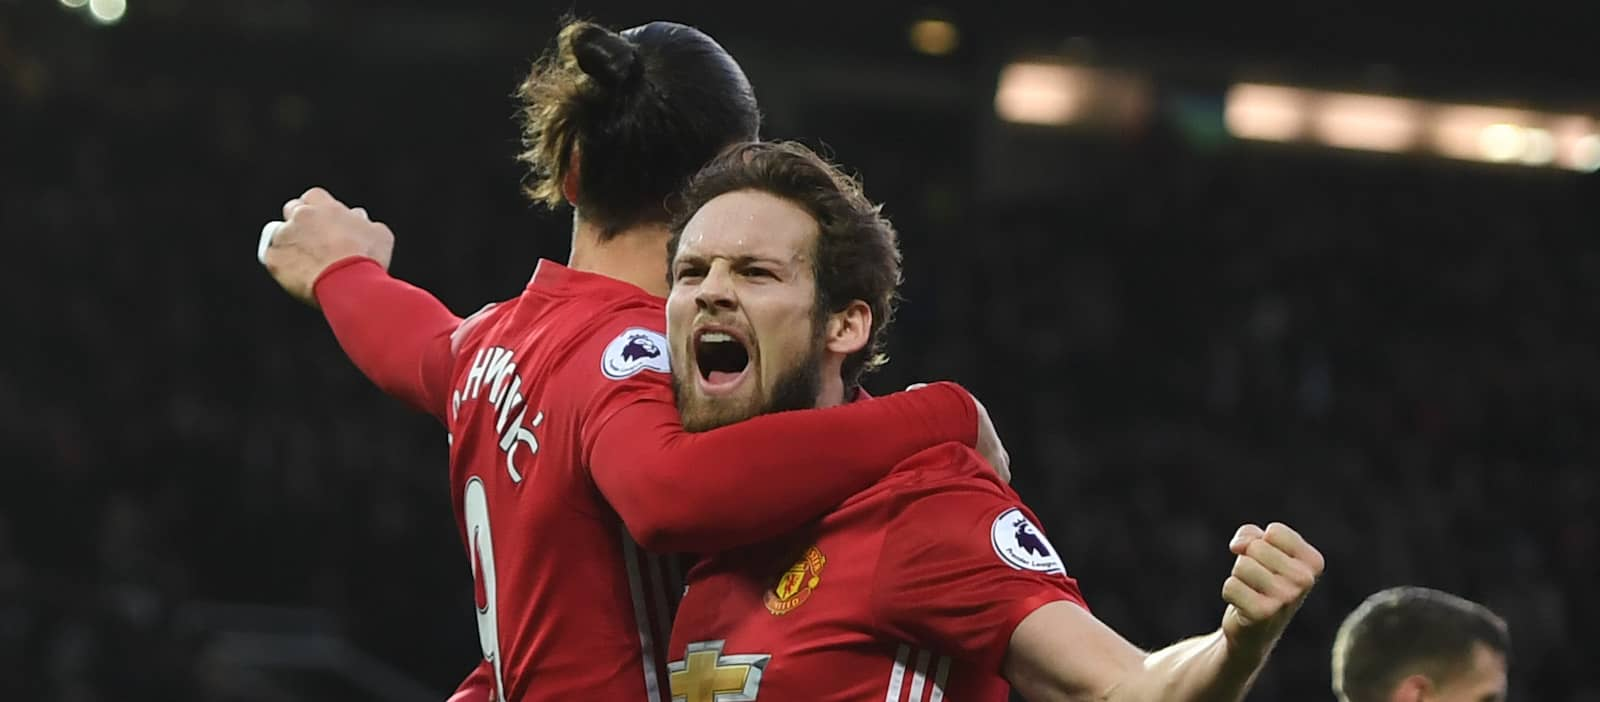 Former Manchester United star Daley Blind undergoes heart surgery